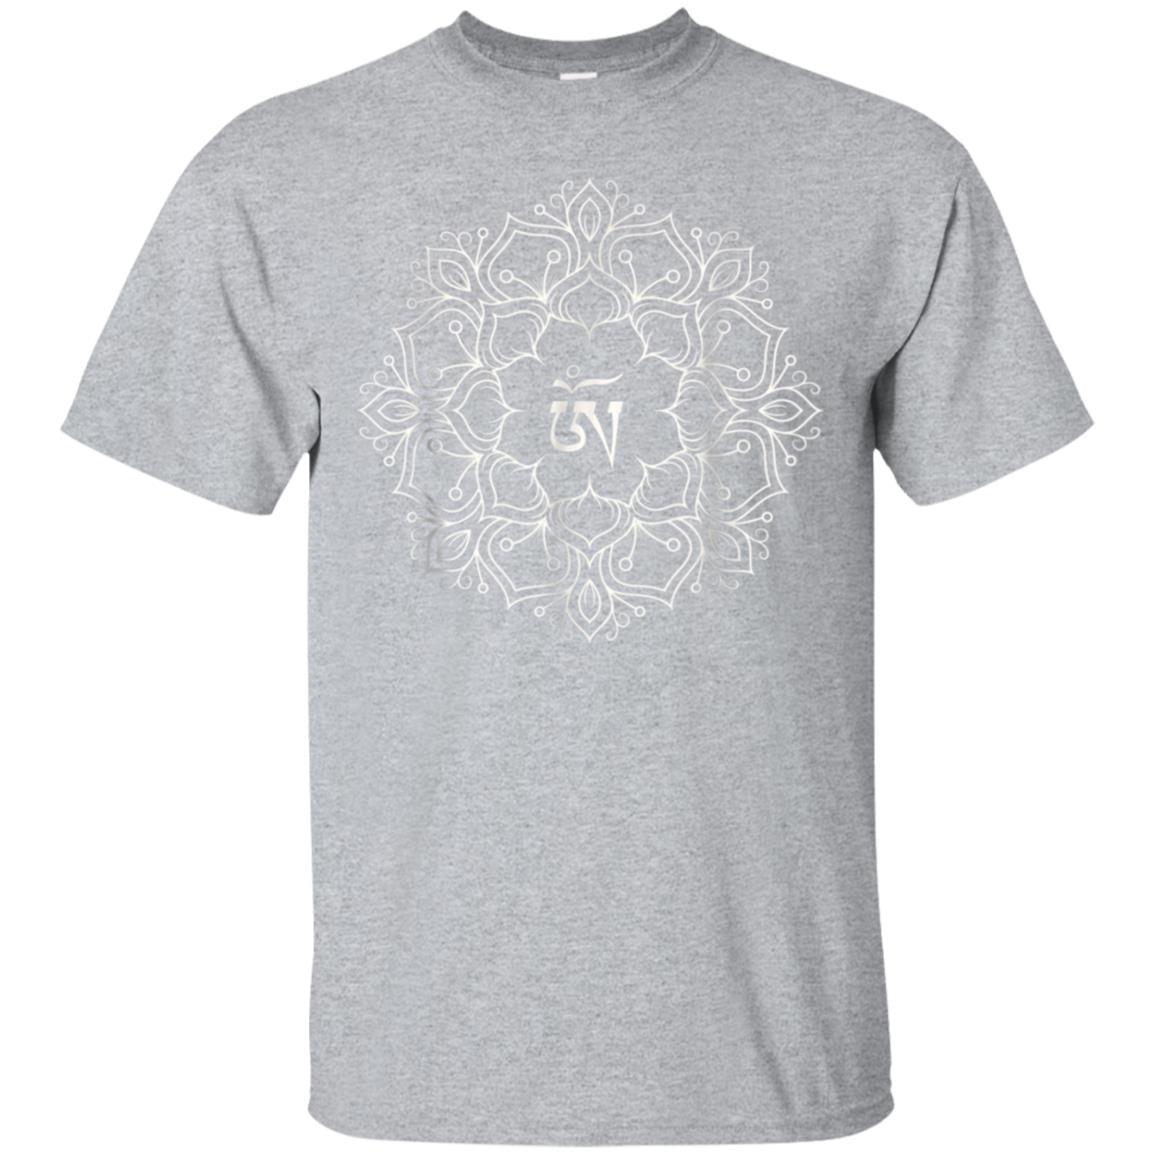 Beautiful Flower Mandala Chakra OM Graphic Yoga T-Shirt 99promocode